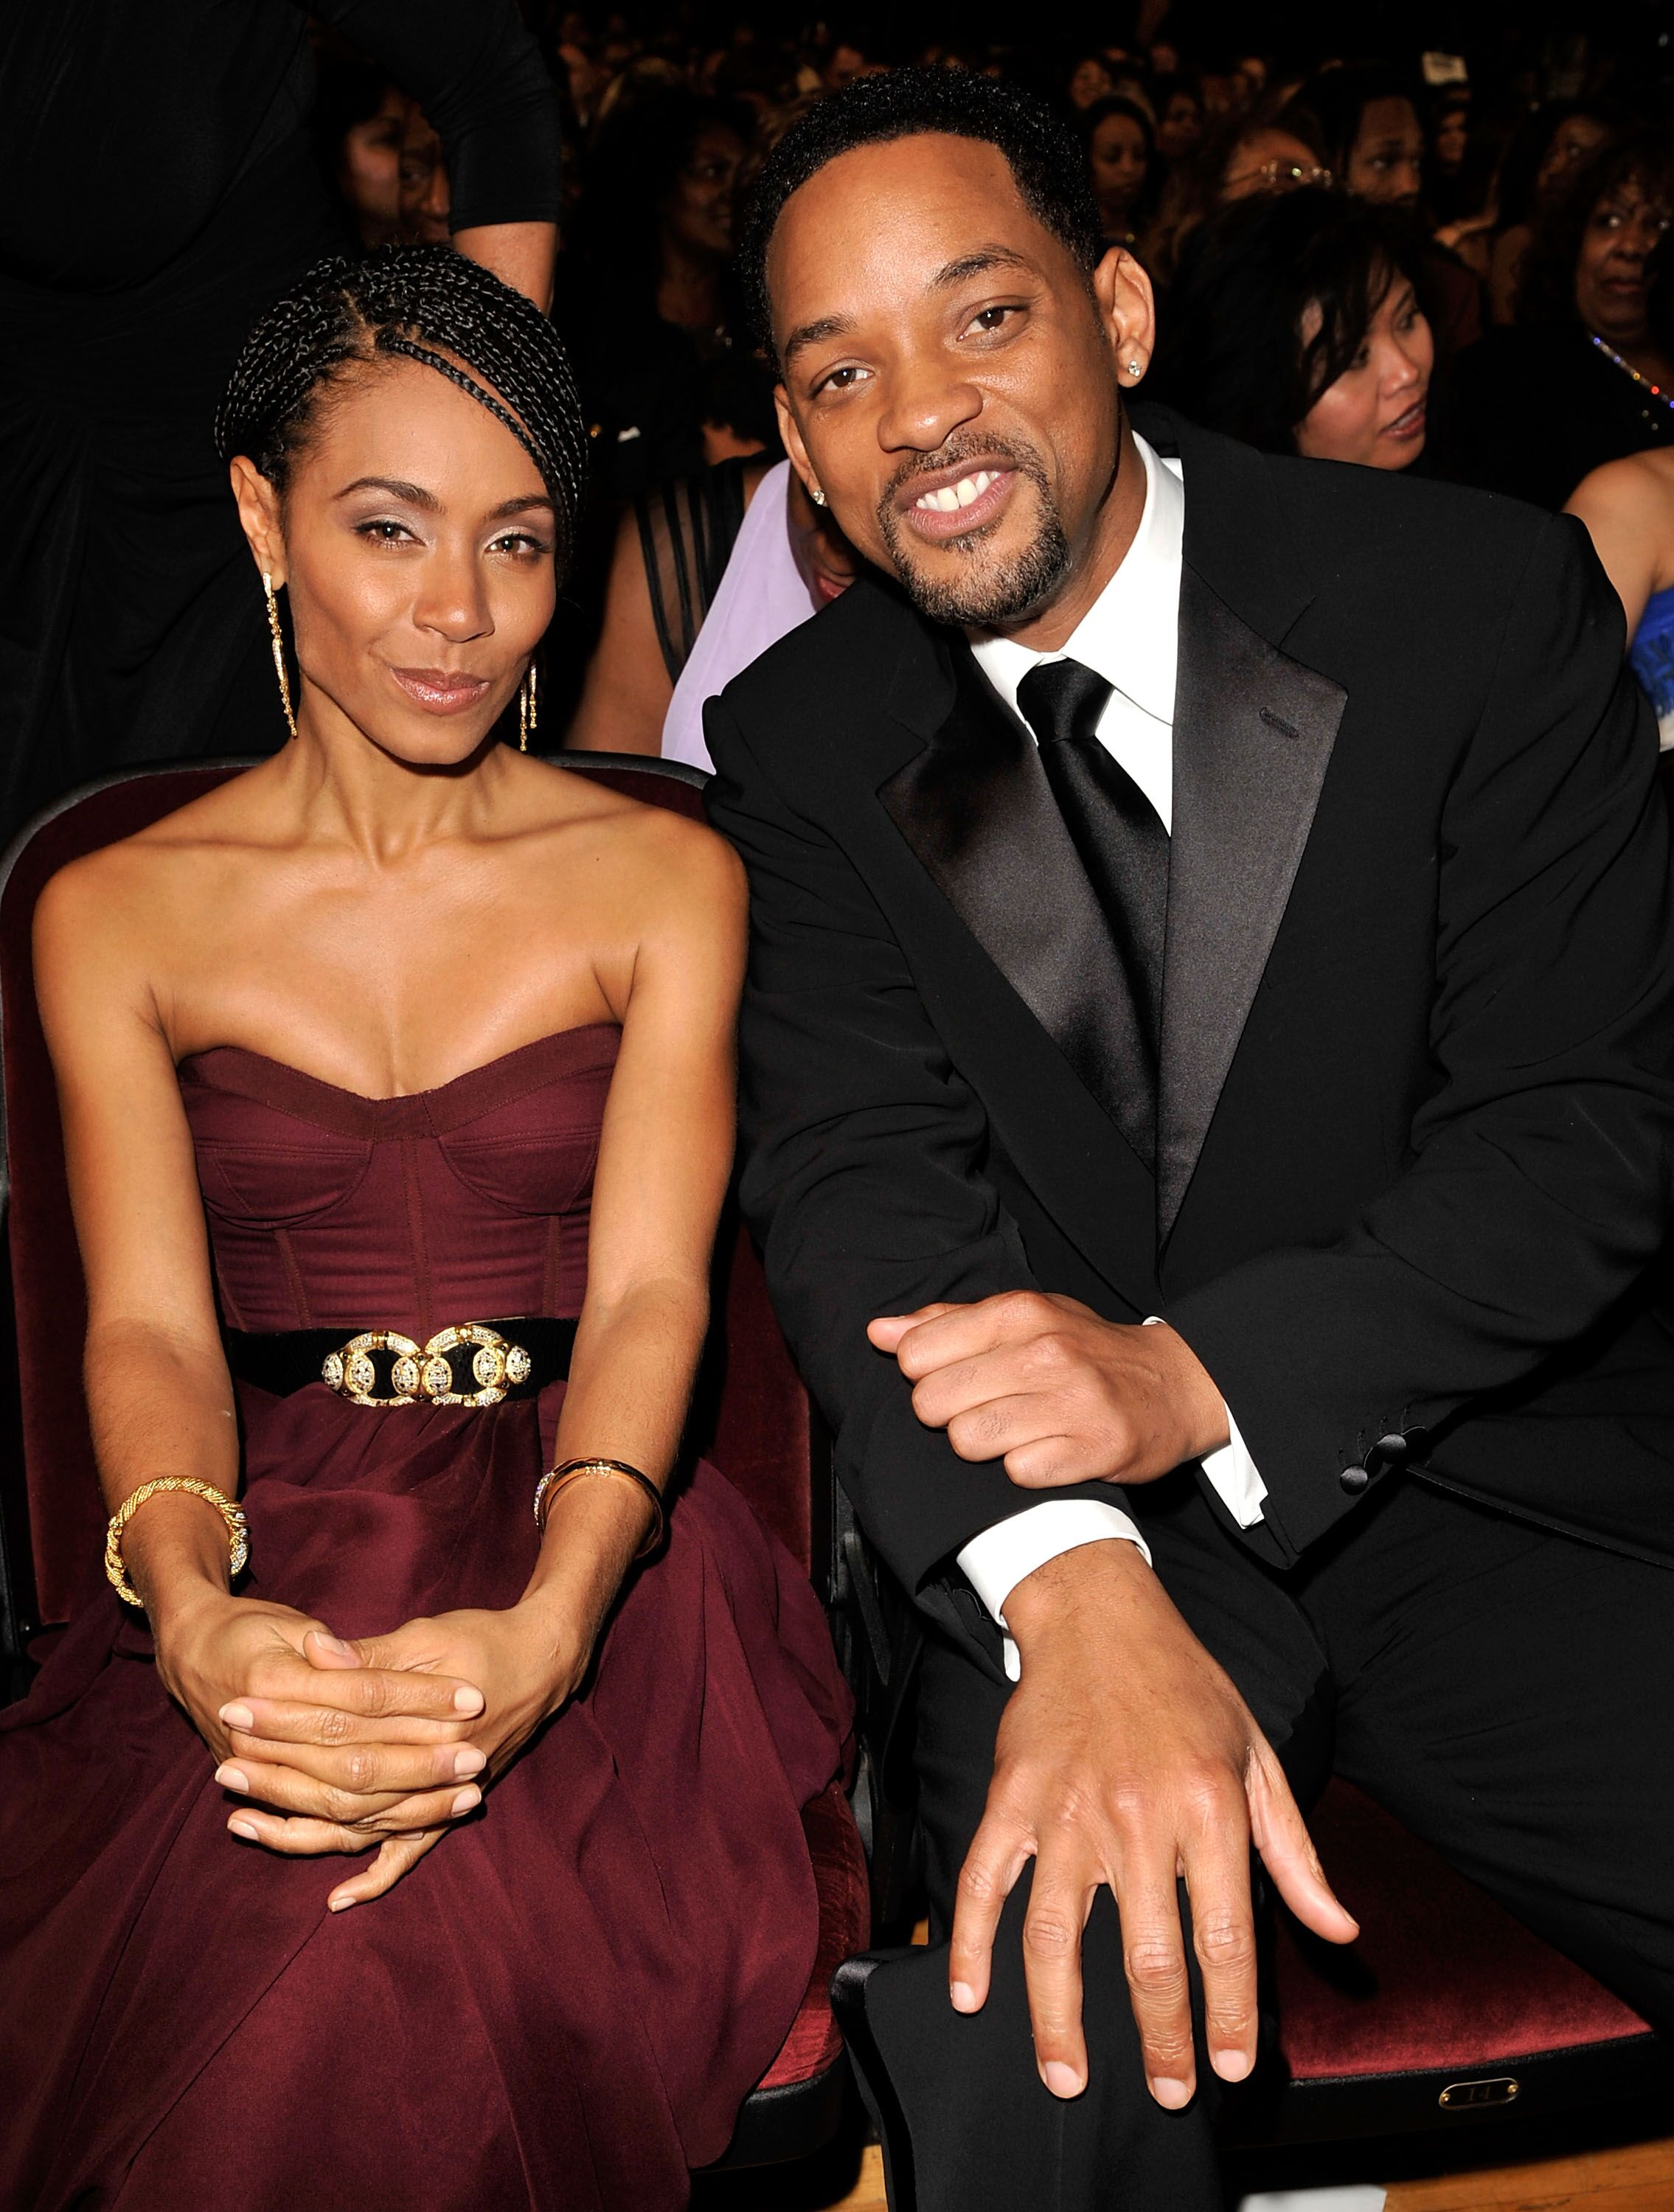 Will Smith and wife, Jada Pinkett Smith/ Source: Getty Images